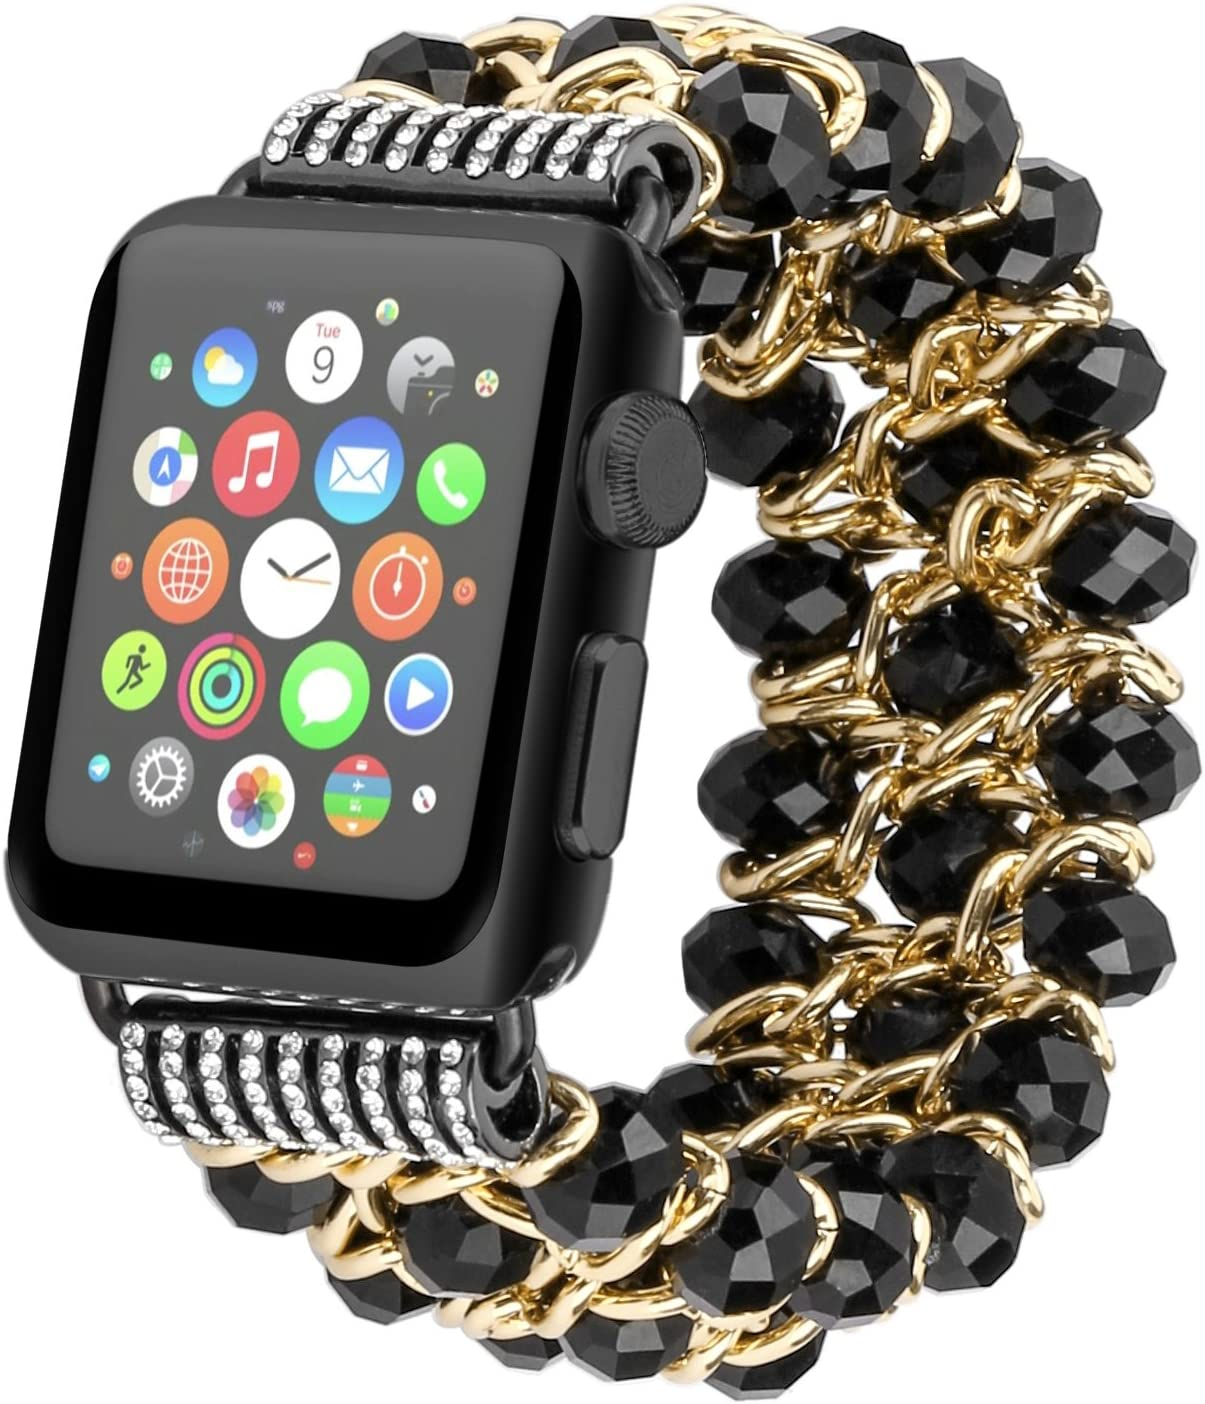 fohuas Compatible for Apple Watch Pearl Bracelet 42mm 44mm, Crystal Beads iWatch Band with Metal Gold Chain Jewelry Dressy Replacement Wristband Strap compatible for Apple Watch Series SE 6 5 4 3 2 1, Sport Edition Nike, Black